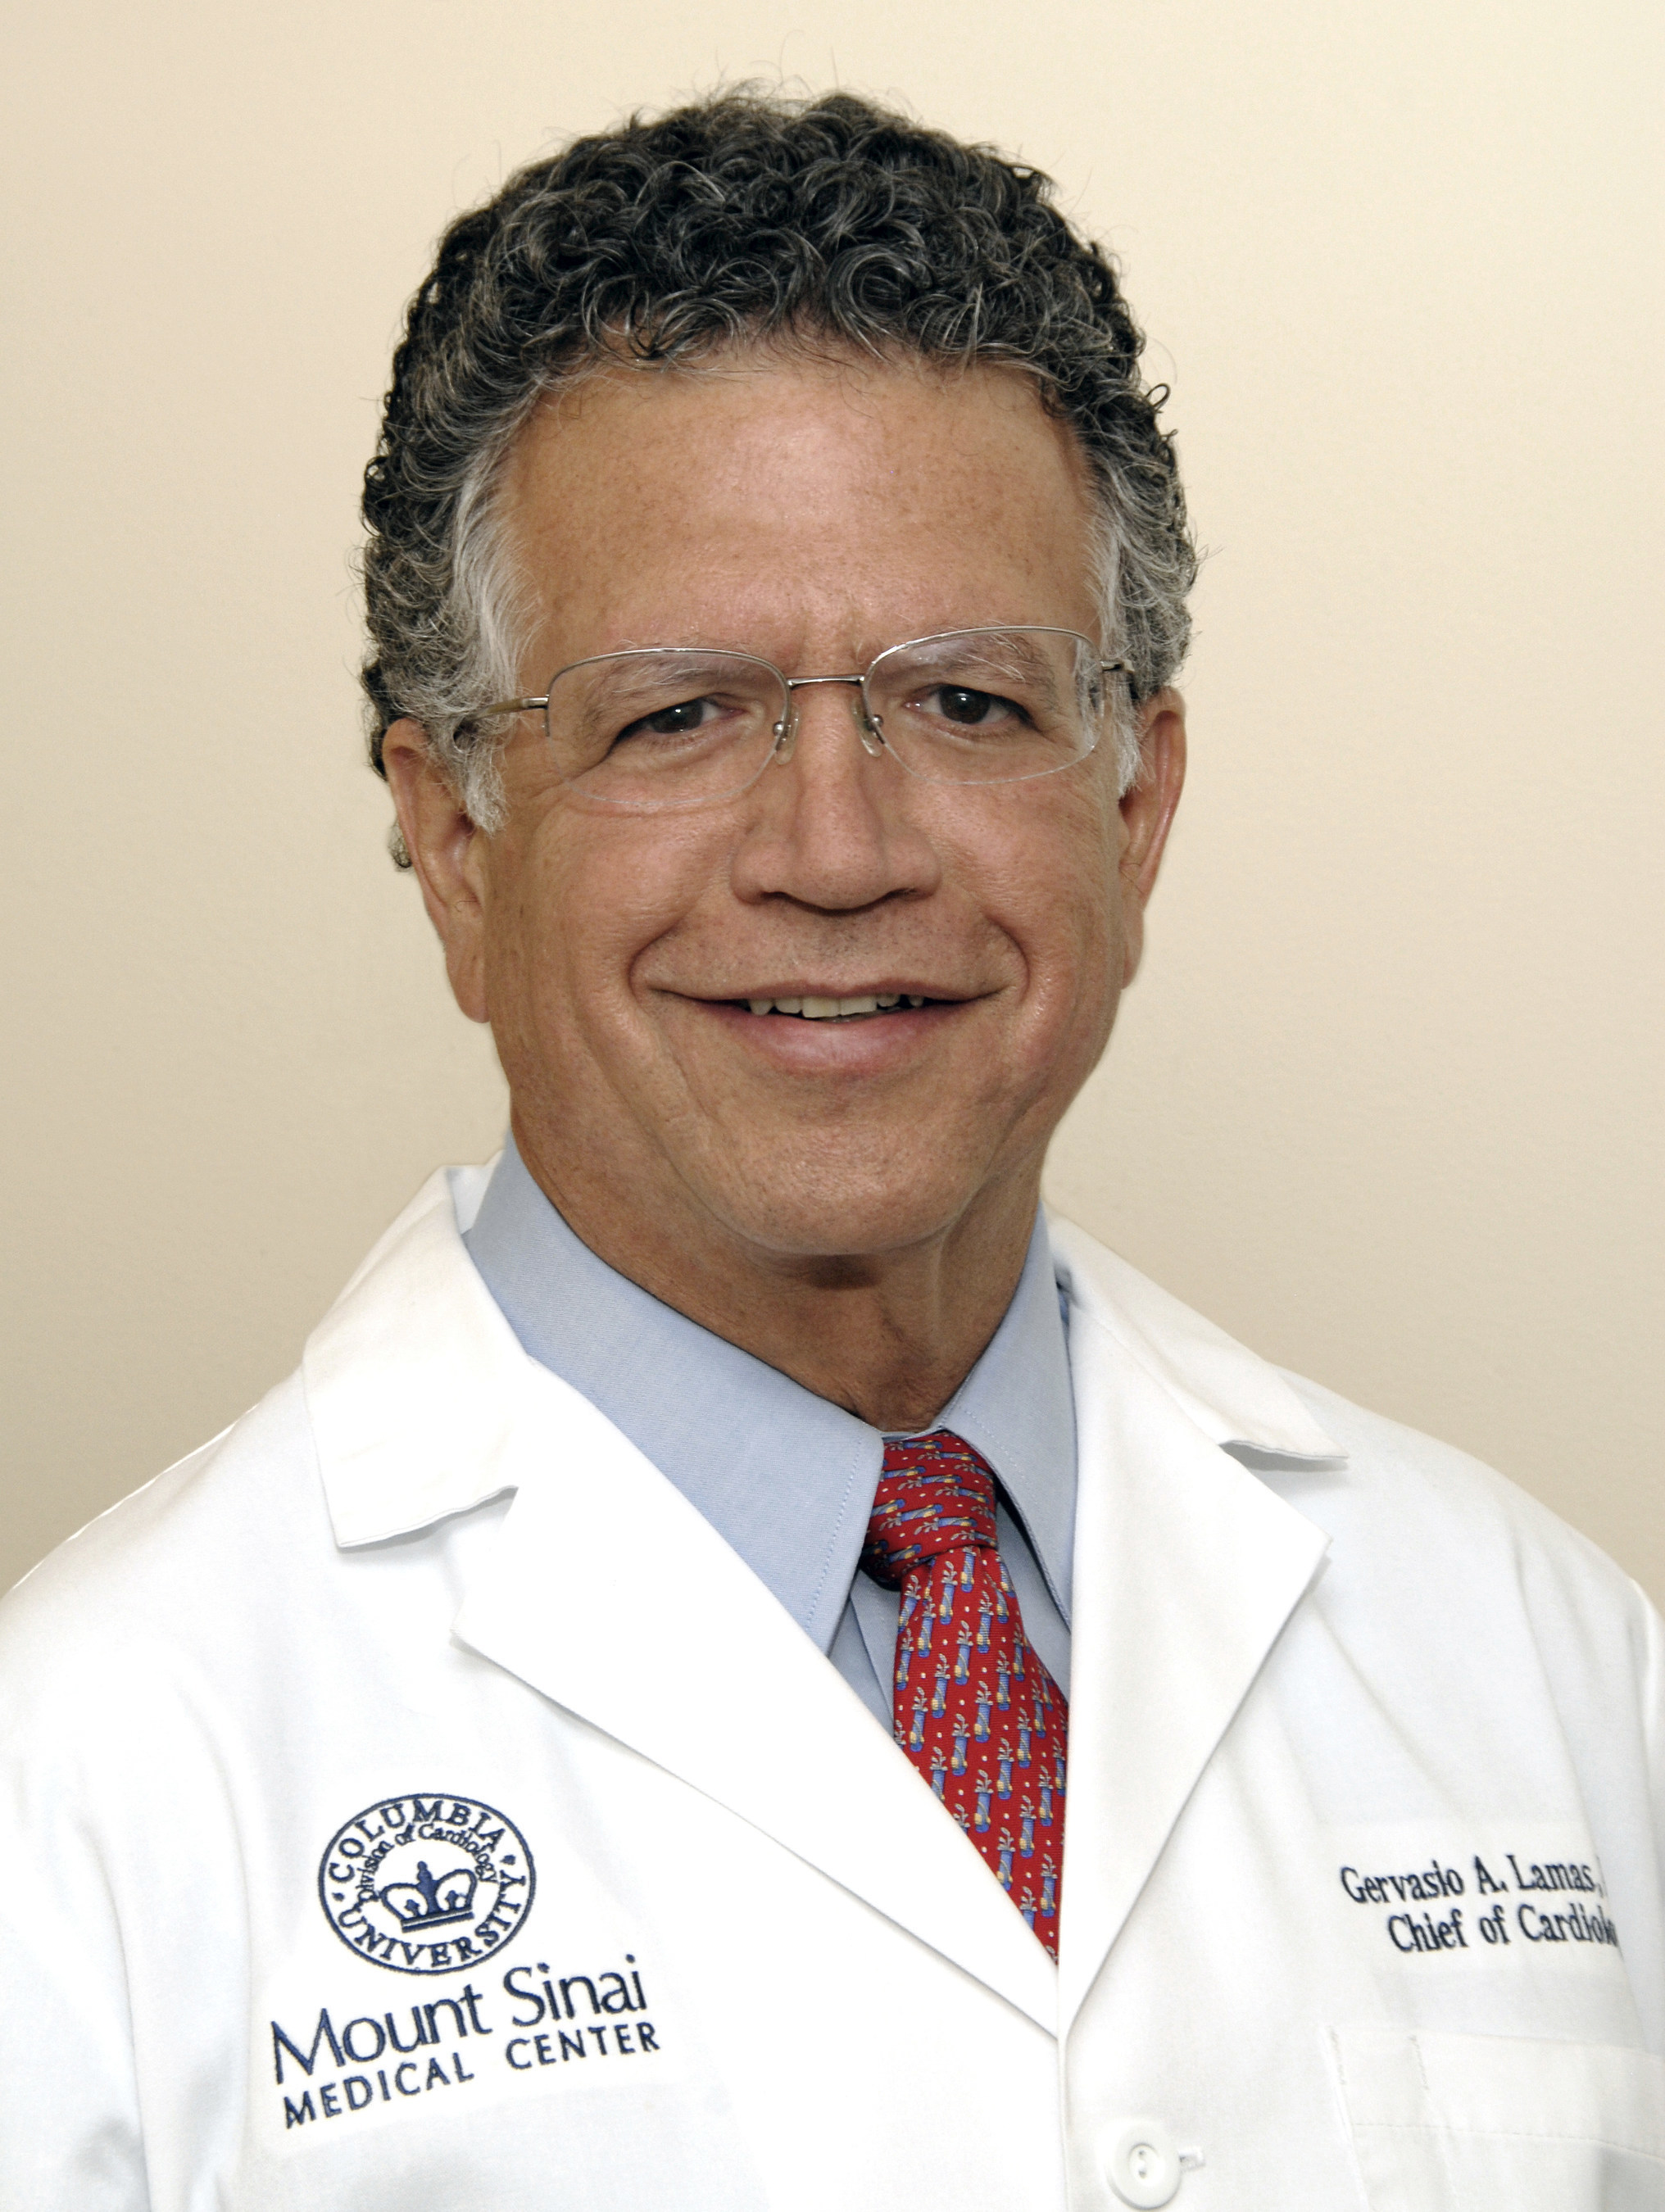 Dr. Gervasio Lamas, chairman of medicine and Chief of the Columbia University Division of Cardiology at Mount Sinai Medical Center of Florida was also the study chairman in the Trial to Assess Chelation Therapy (TACT).